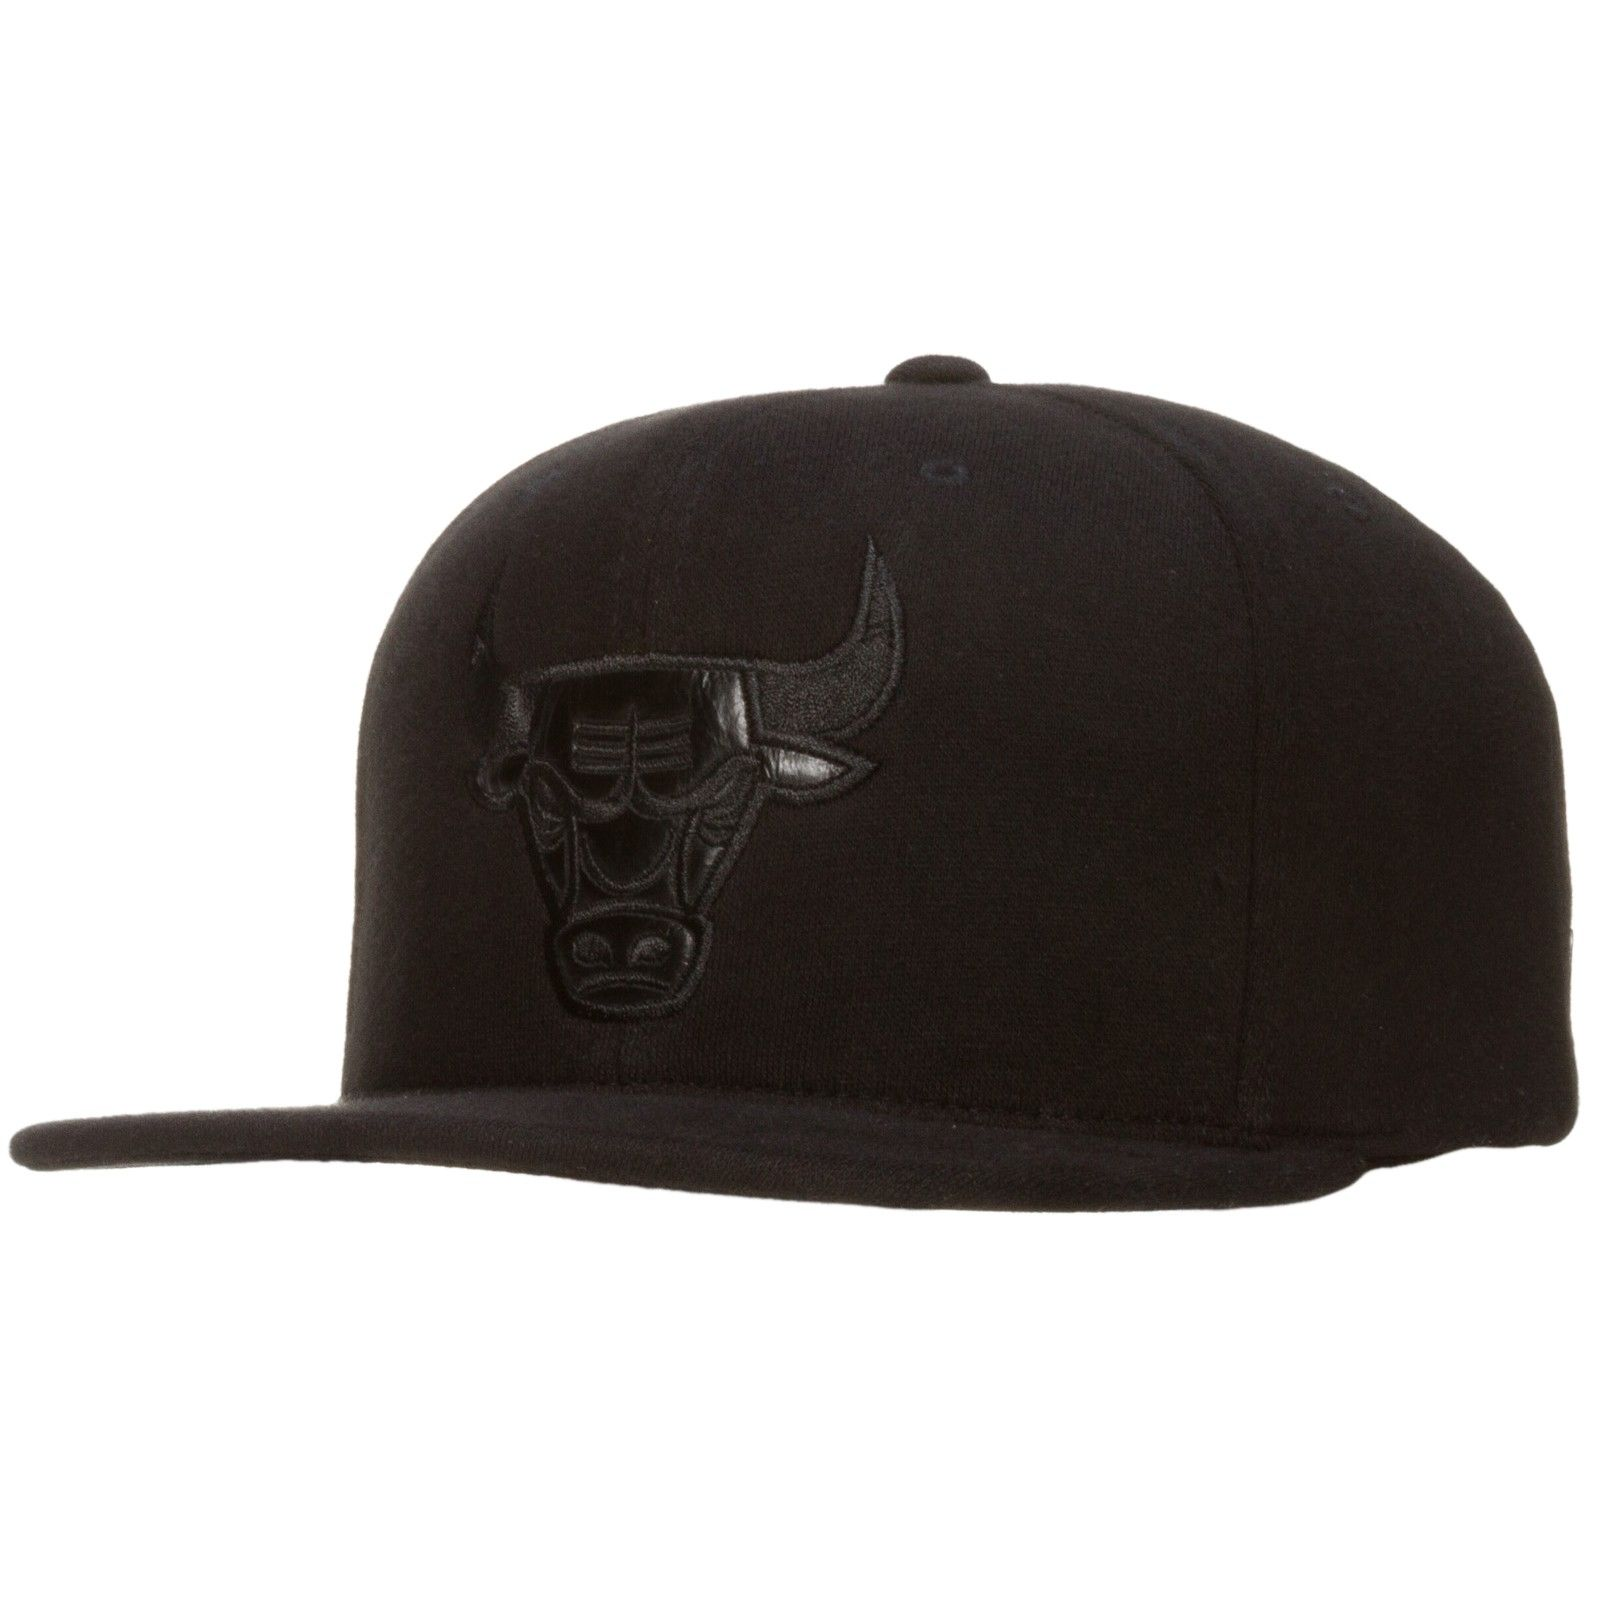 Chicago Bulls Black Monochromatic Angry Bull Snapback Hat by Mitchell & Ness  #Chicago #Bulls